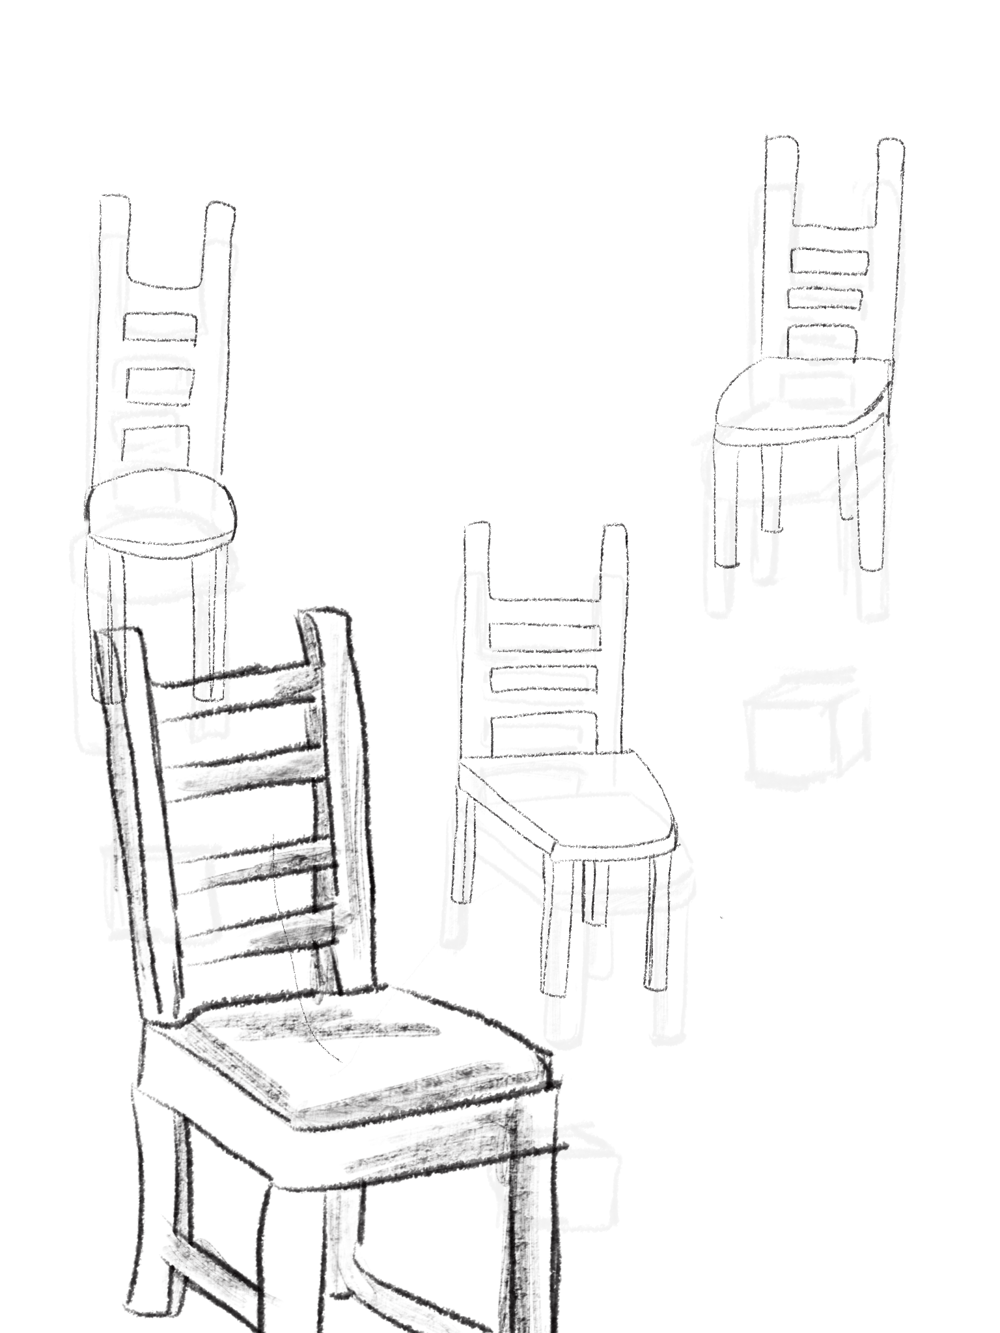 My ideal working space - image 2 - student project